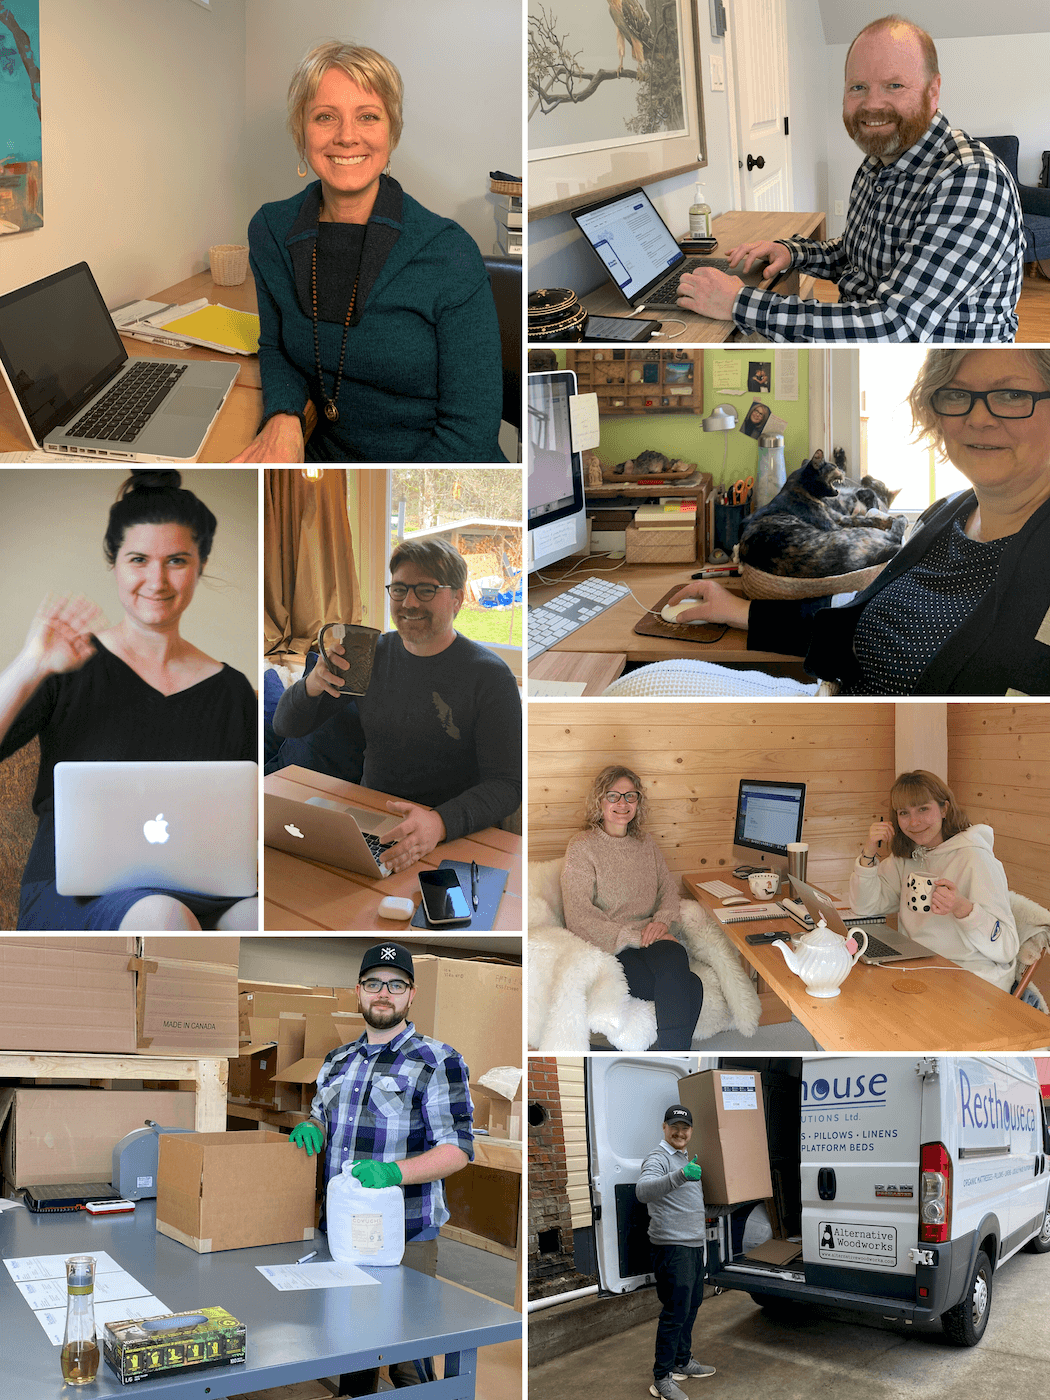 Our Team is Working From Home During COVID-19 Time